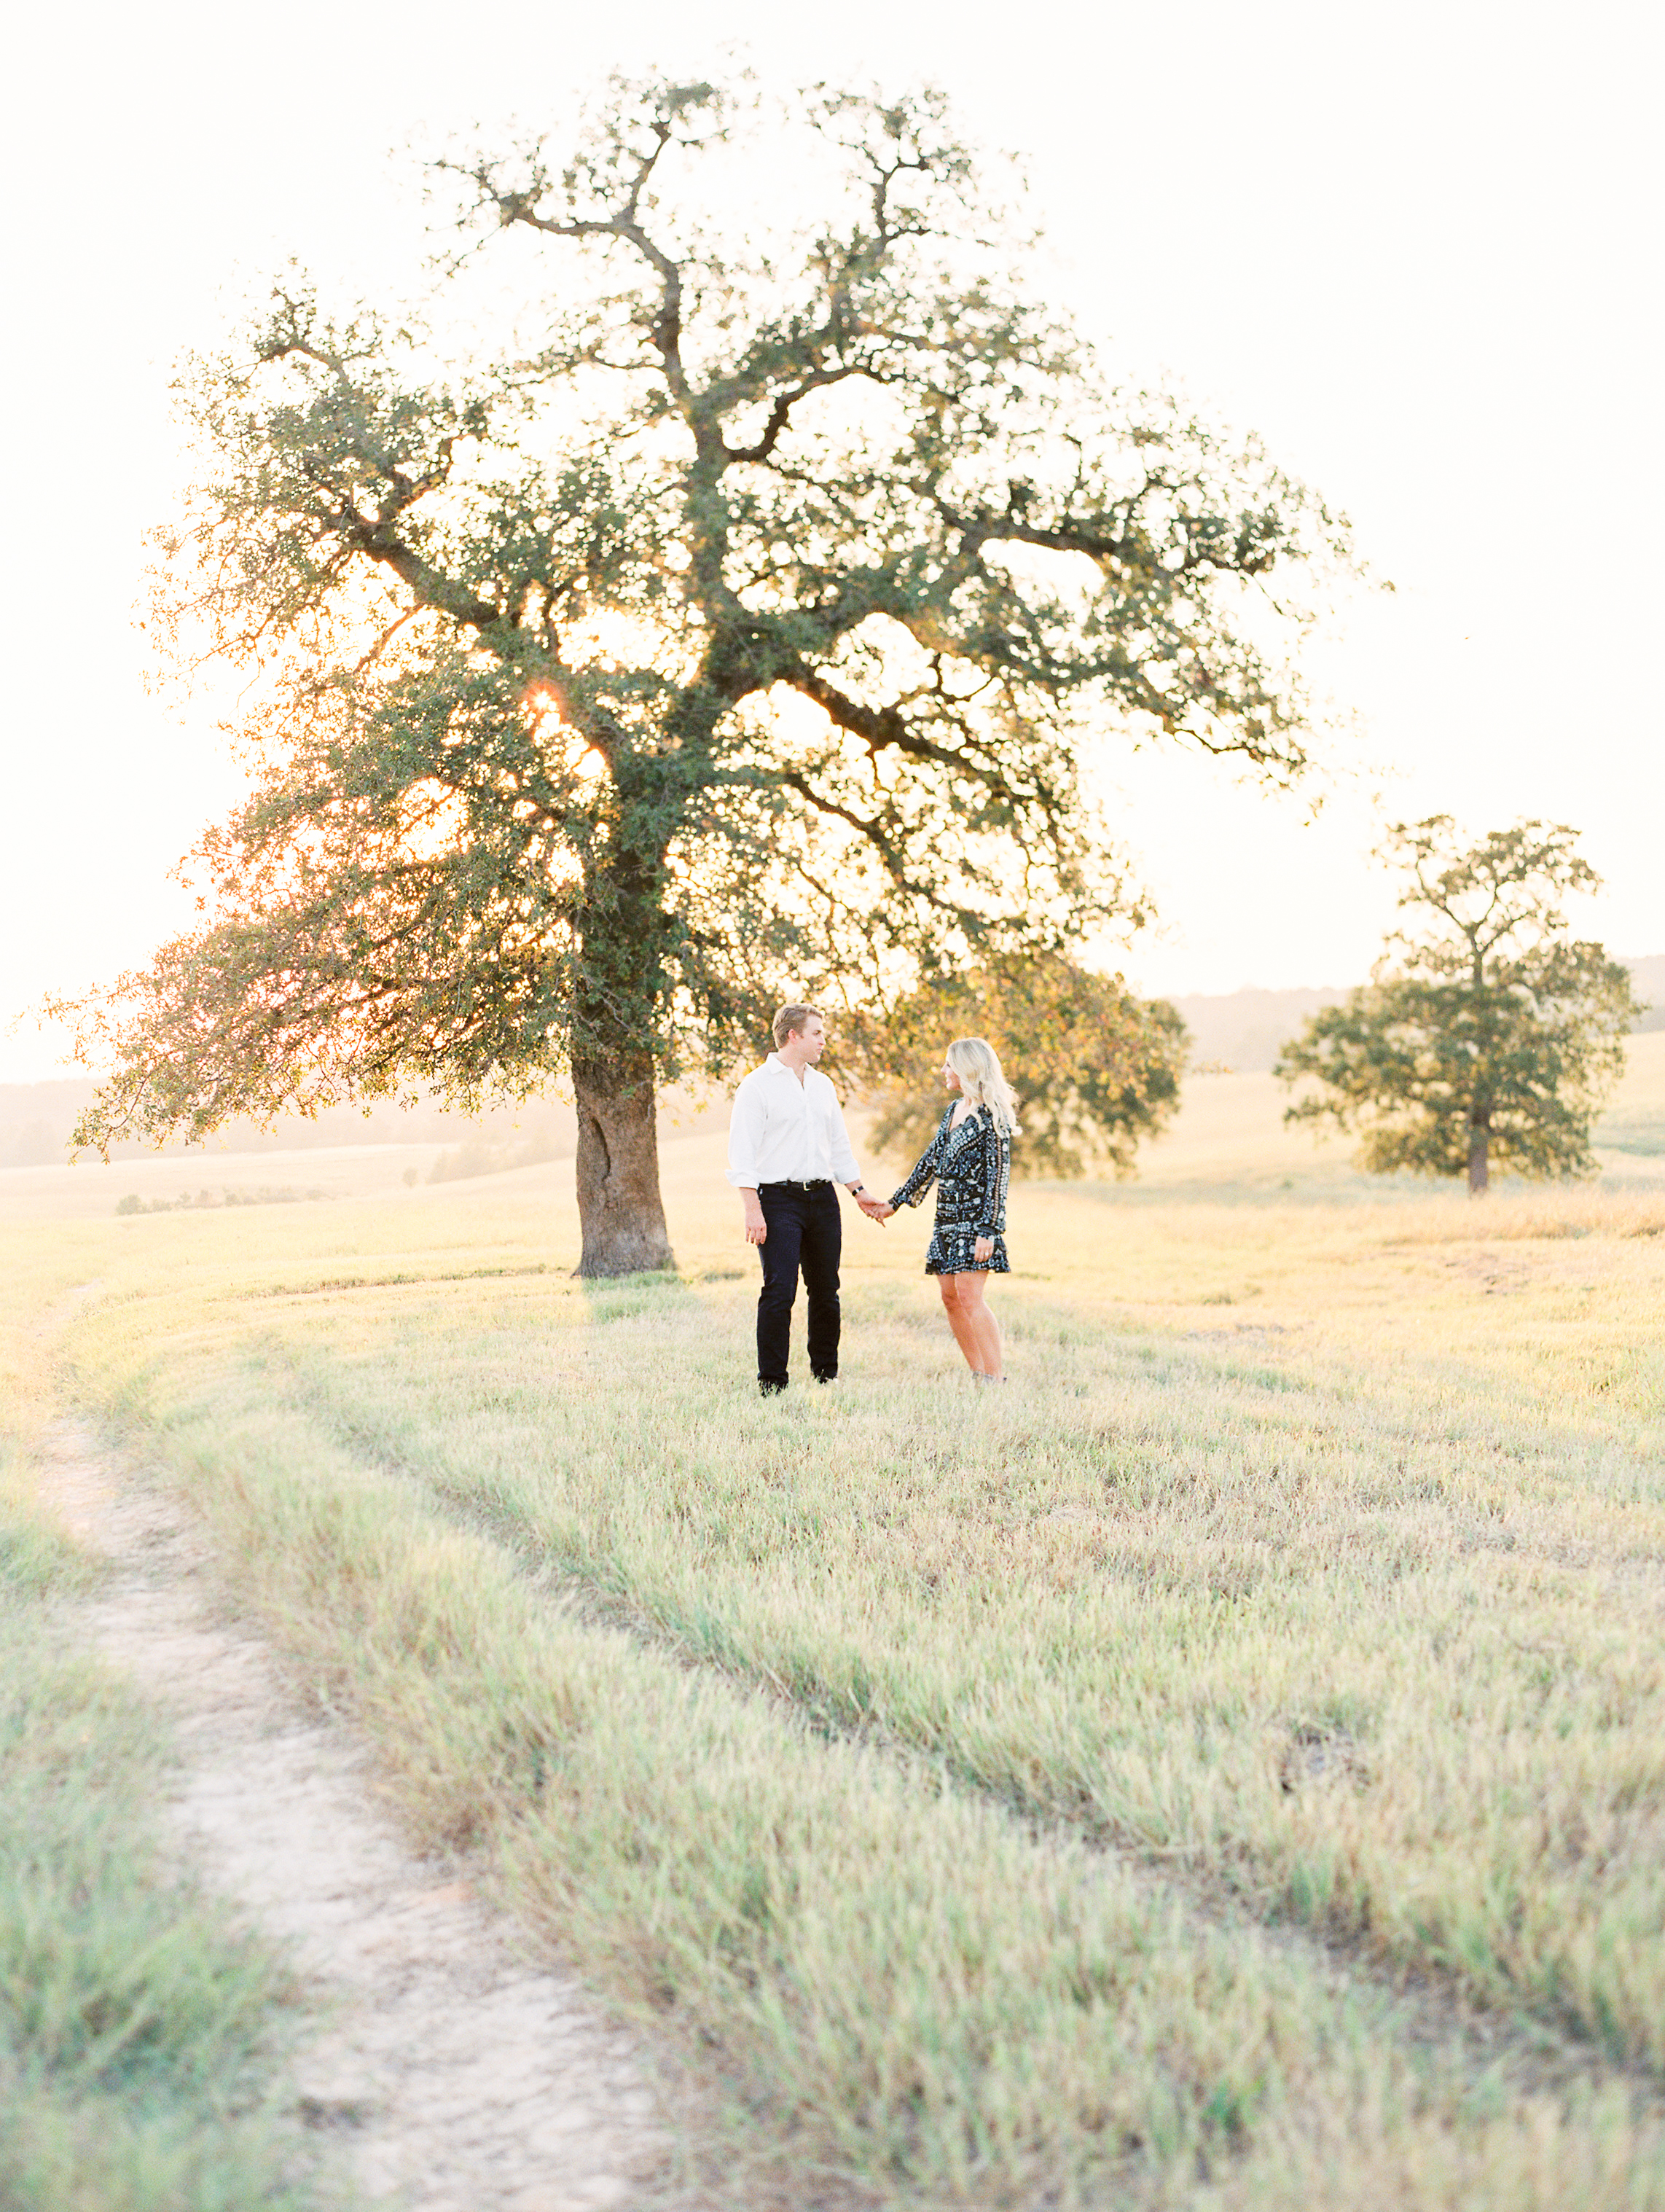 Lauren+John+Engaged+TX-52.jpg